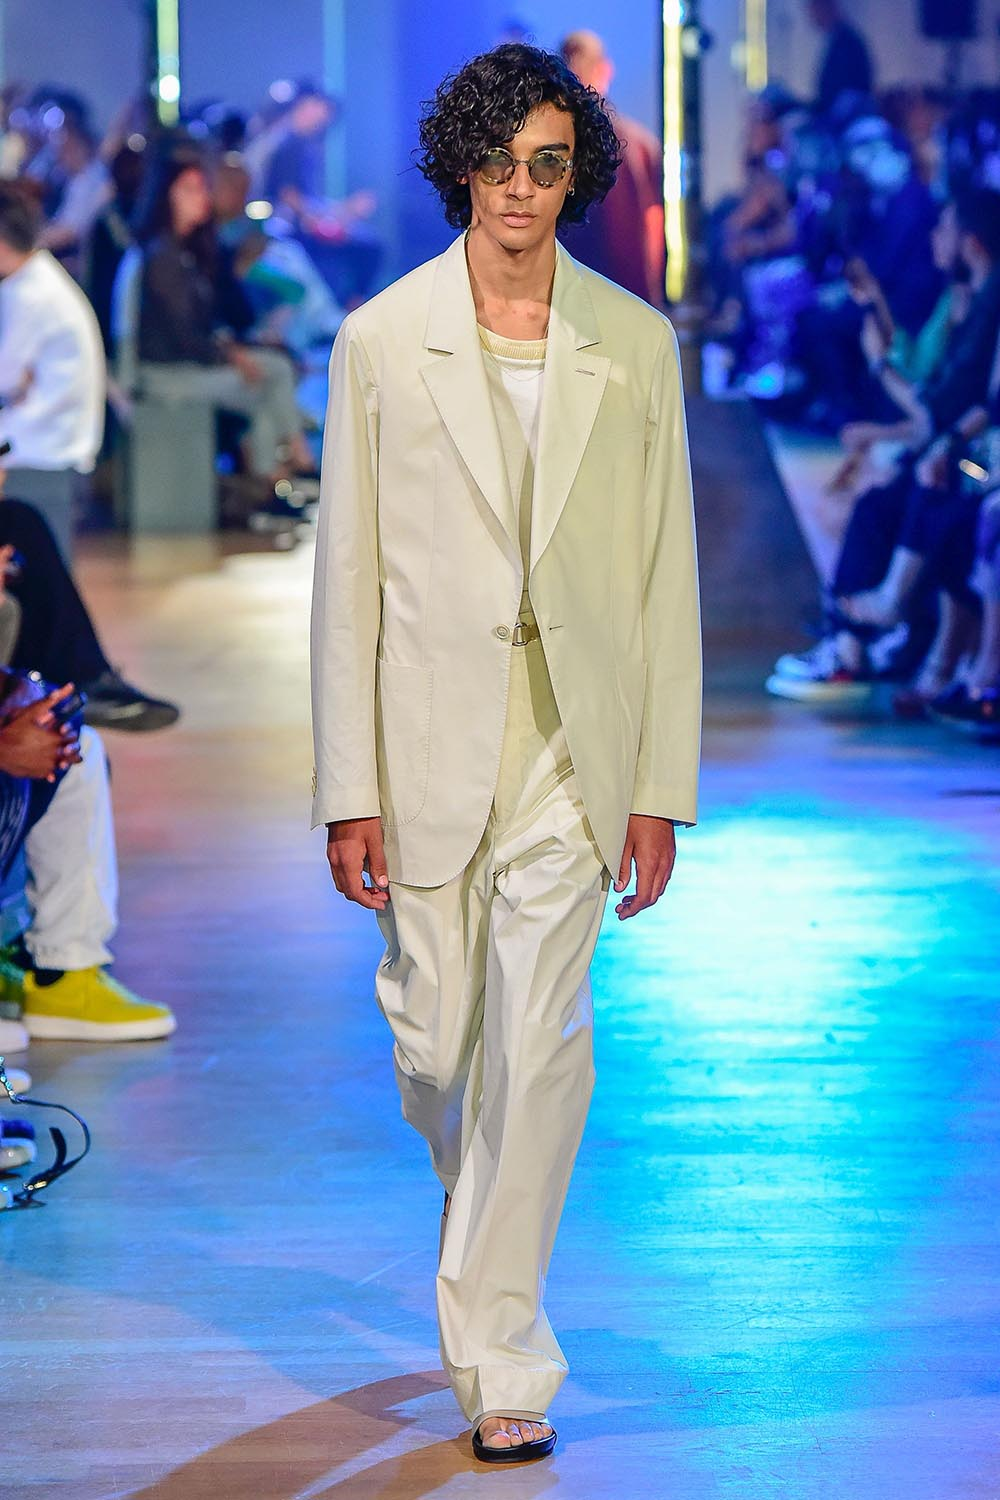 Cerruti 1881 Paris Fashion Week Men's SS19 - Sagaboi - Look 15